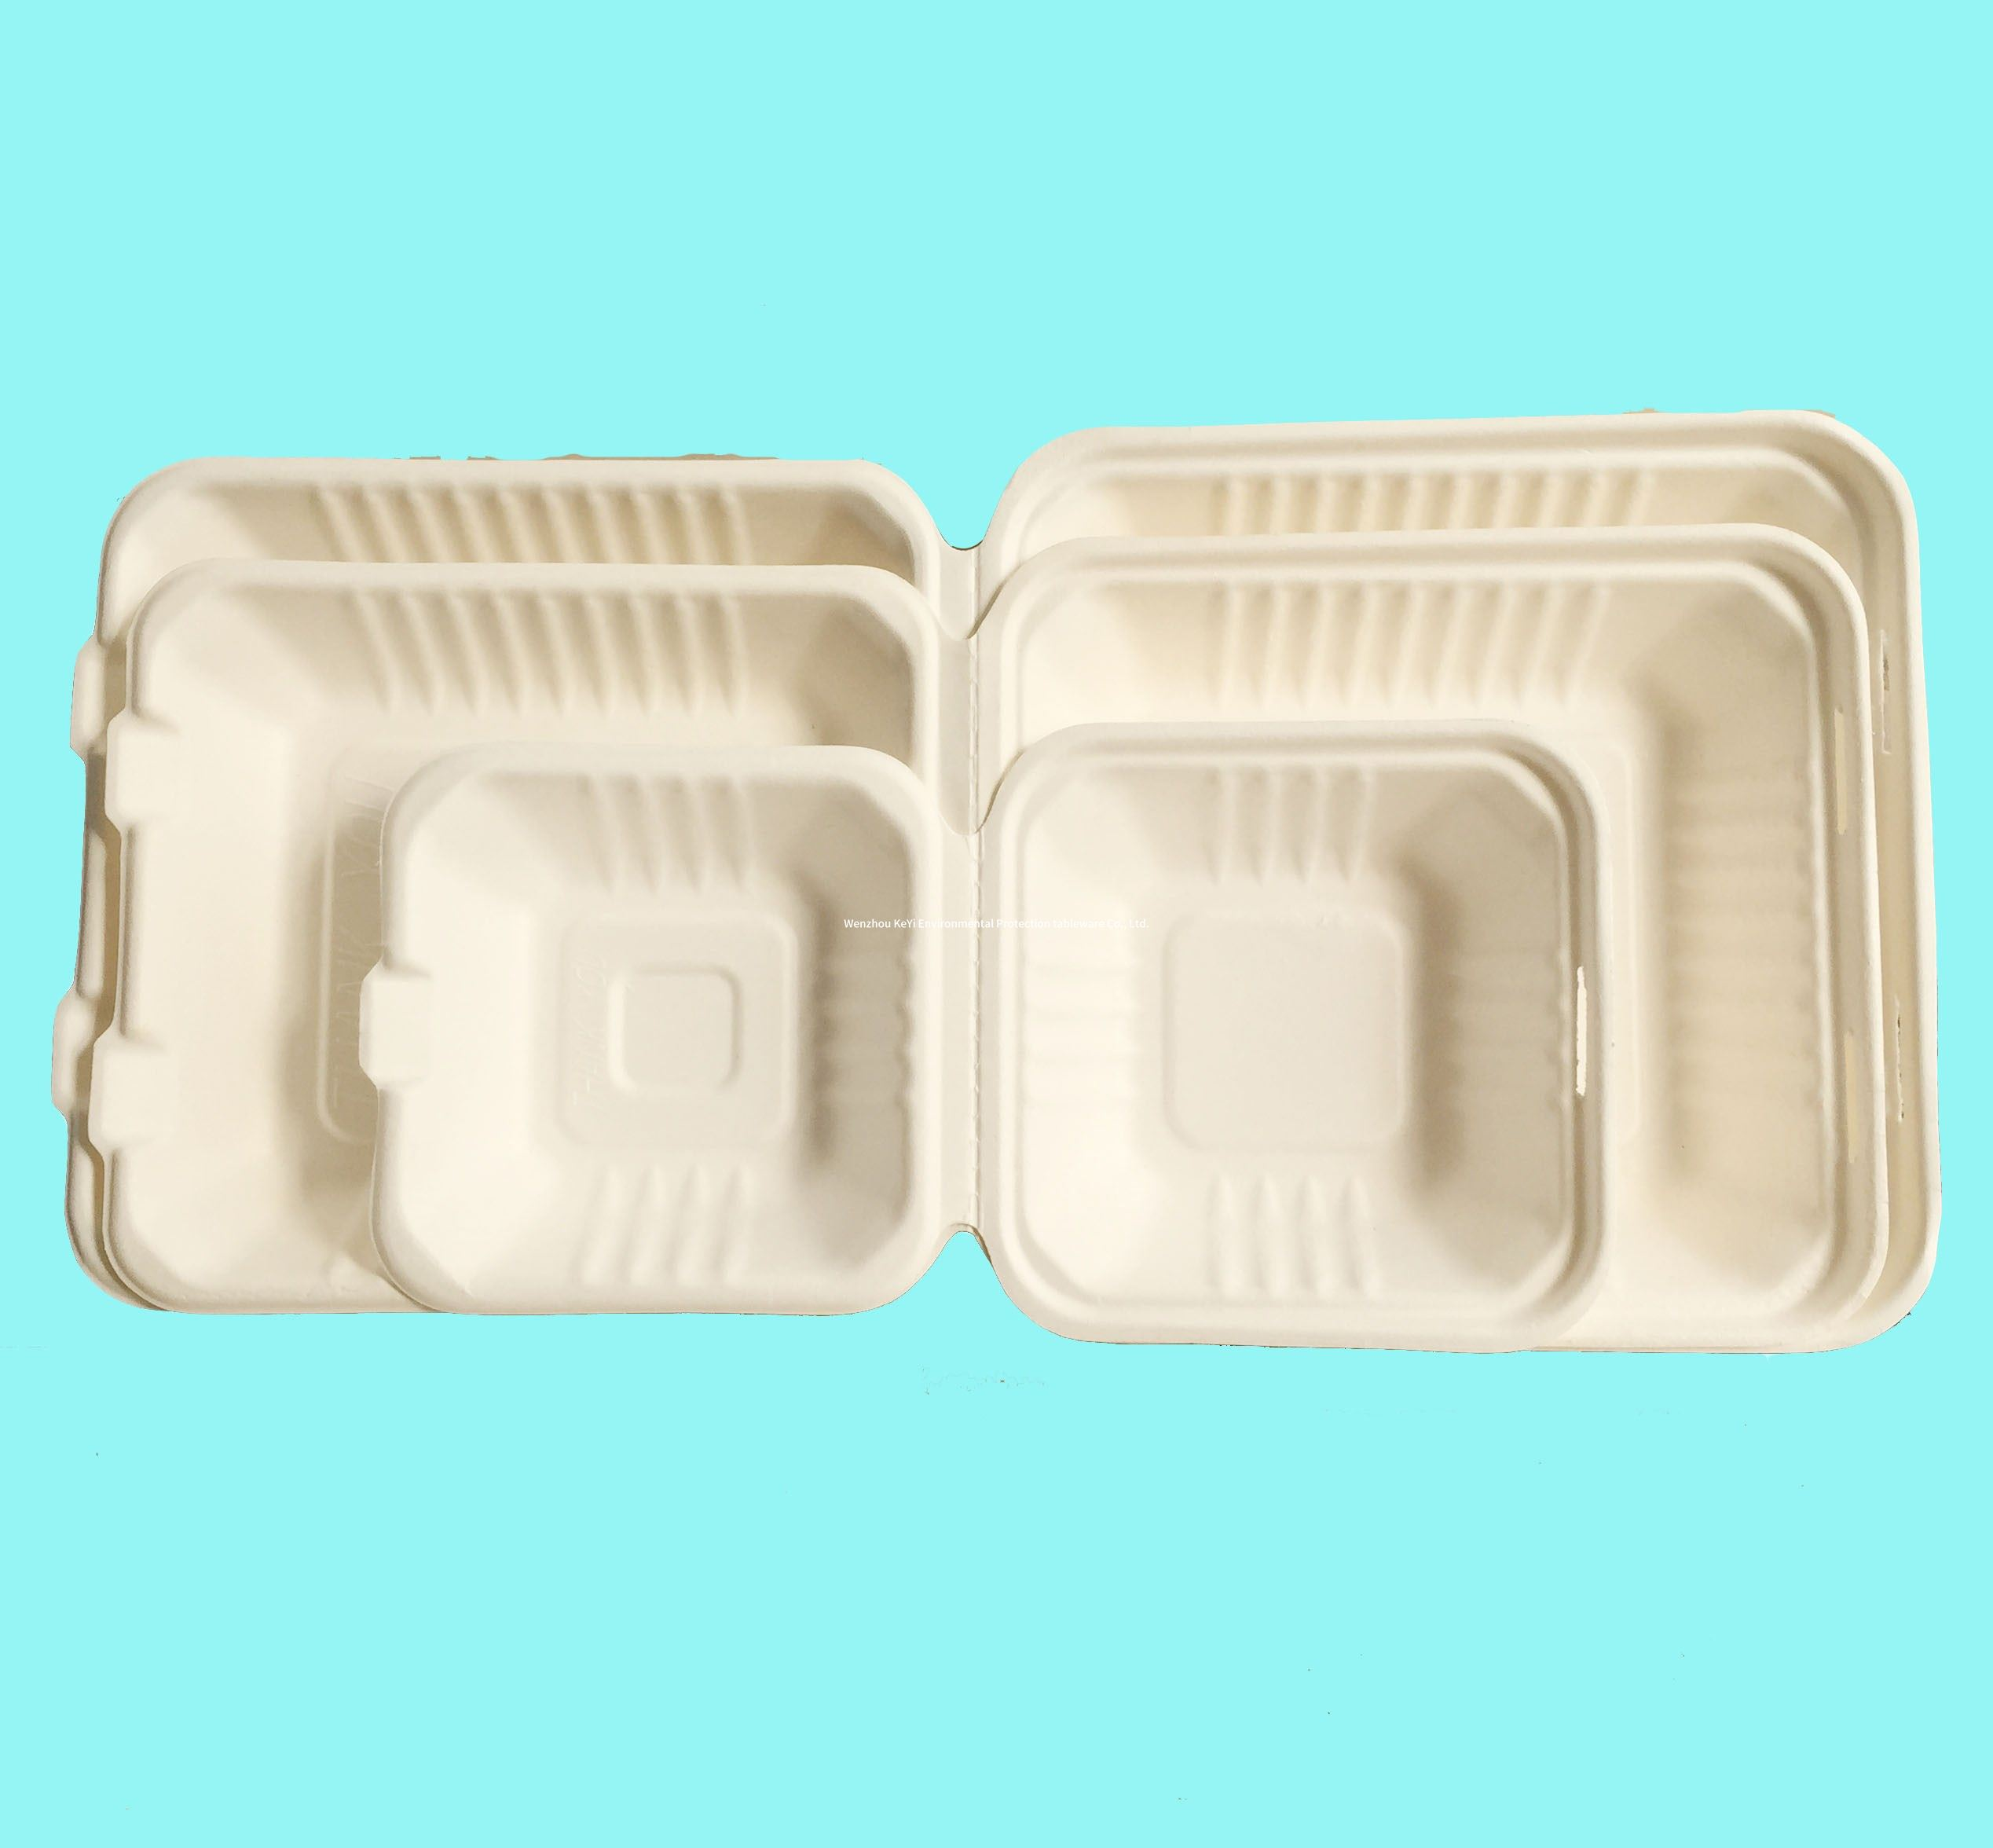 Biodegradable, Plant-Based, Tree Free, Disposable sugarcane clamshell